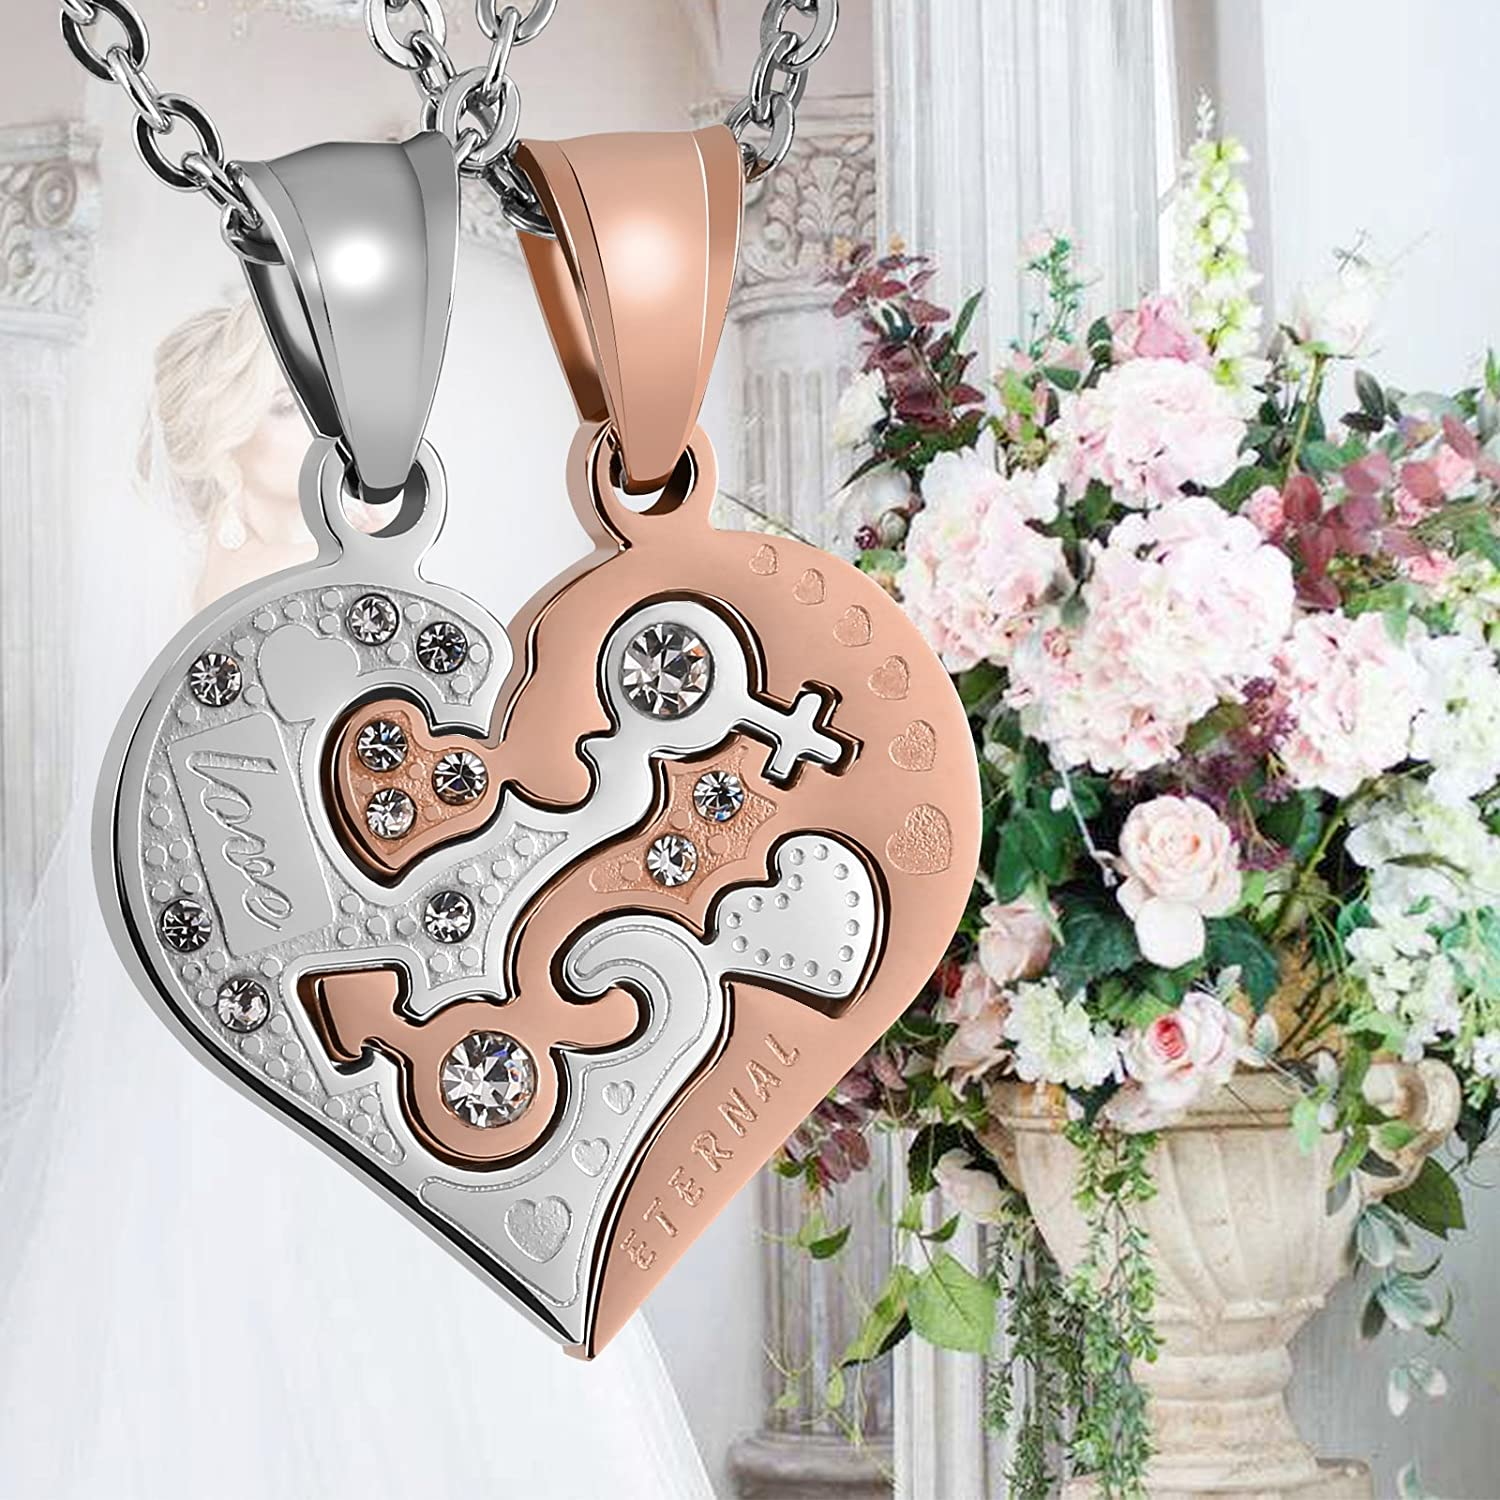 Aeici His and Hers Matching Set Stainless Steel Half Heart Pendant with Cross Puzzle Necklaces